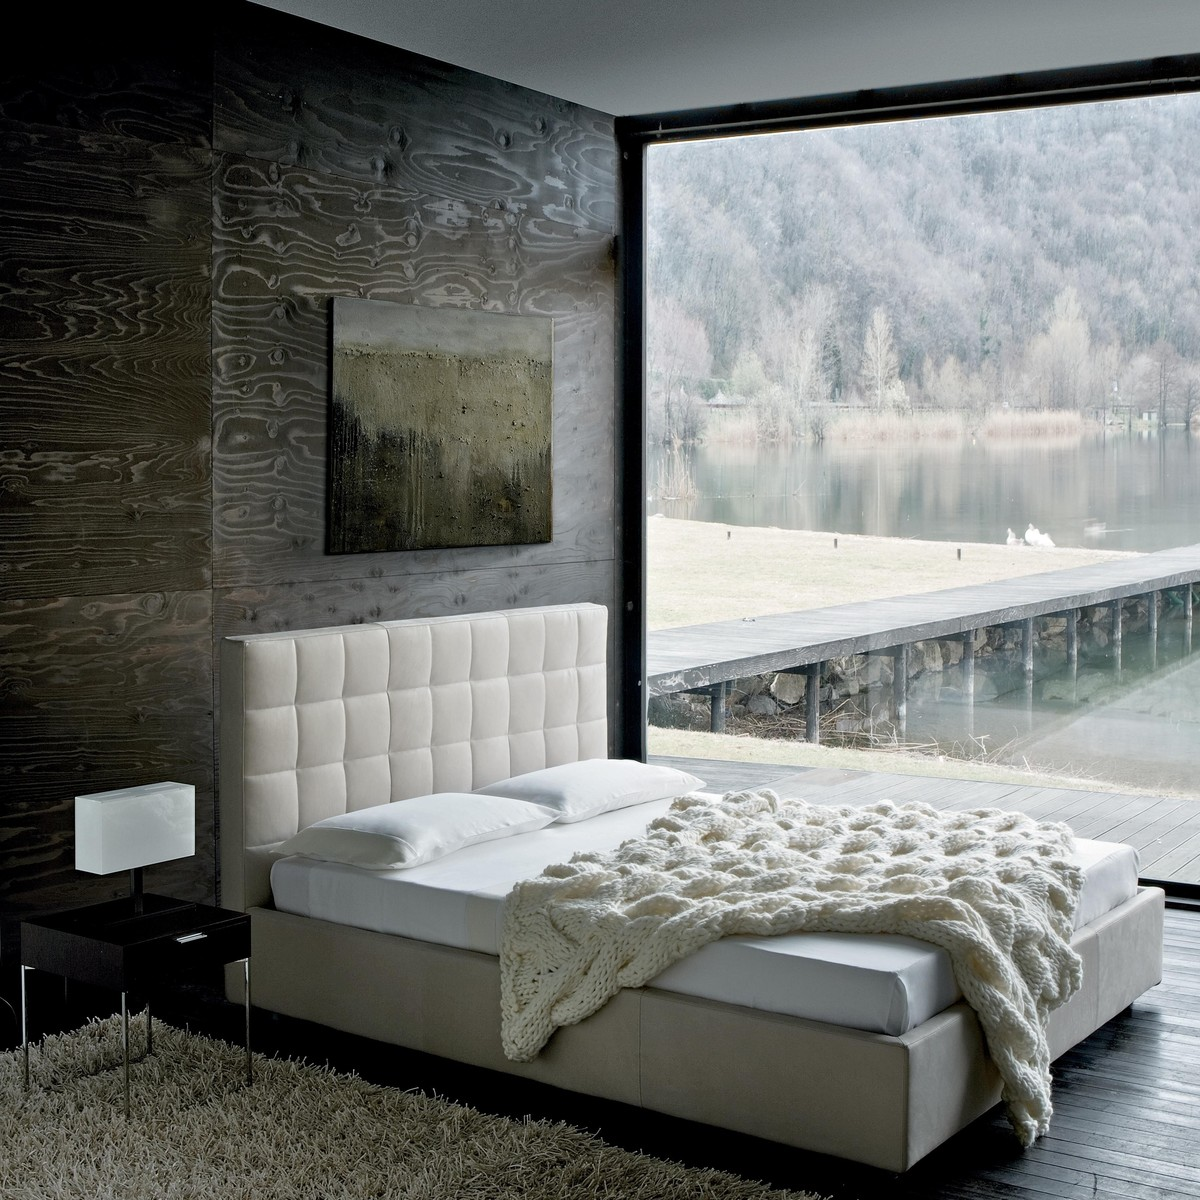 overbox doppelbett mit bettkasten zanotta. Black Bedroom Furniture Sets. Home Design Ideas